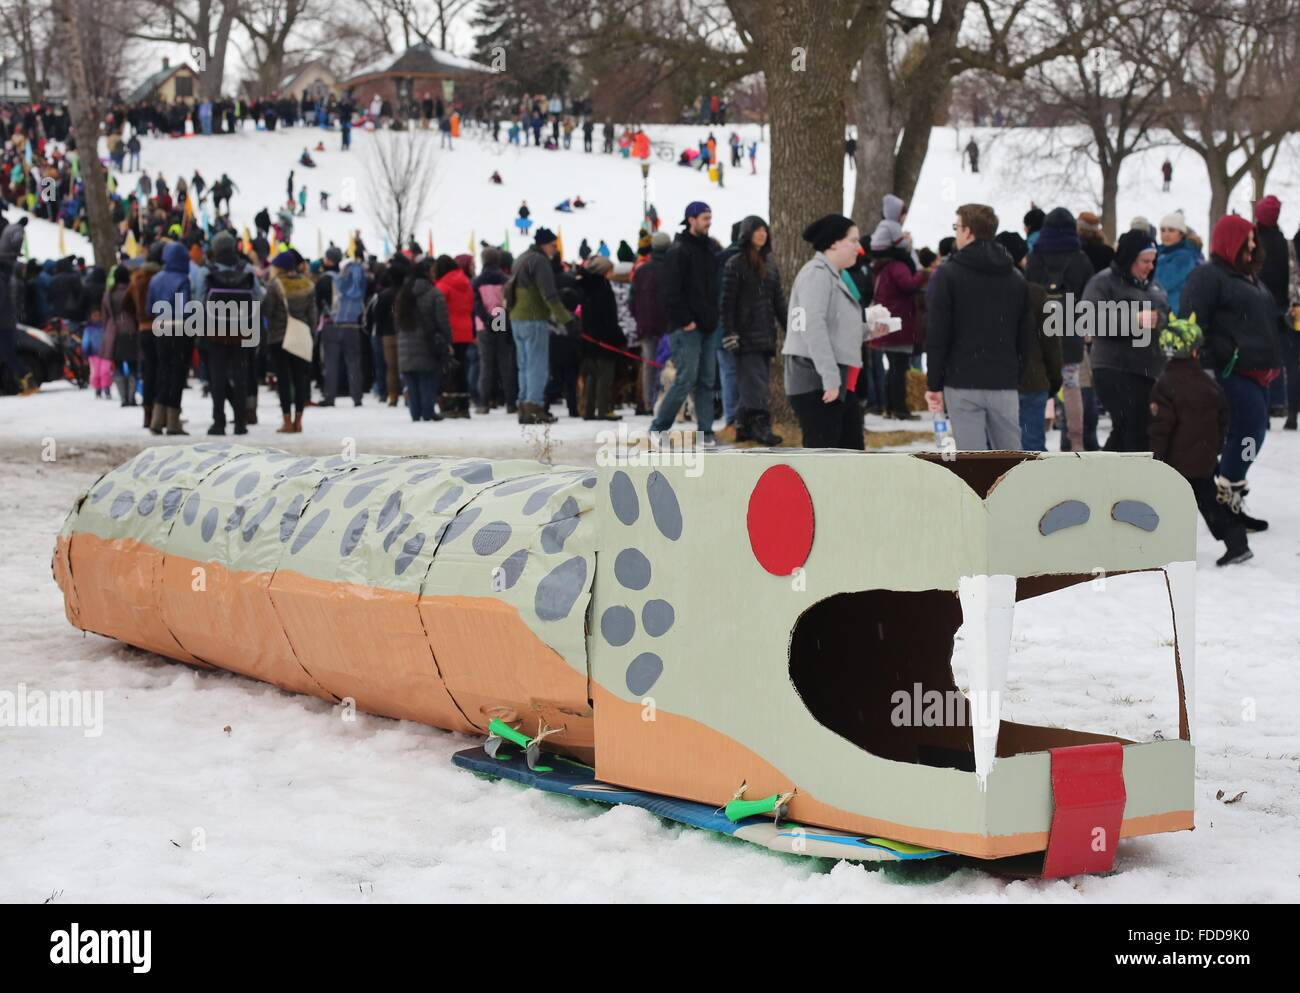 An art sled shaped like a snake at the Art Sled Rally in Minneapolis, Minnesota. - Stock Image